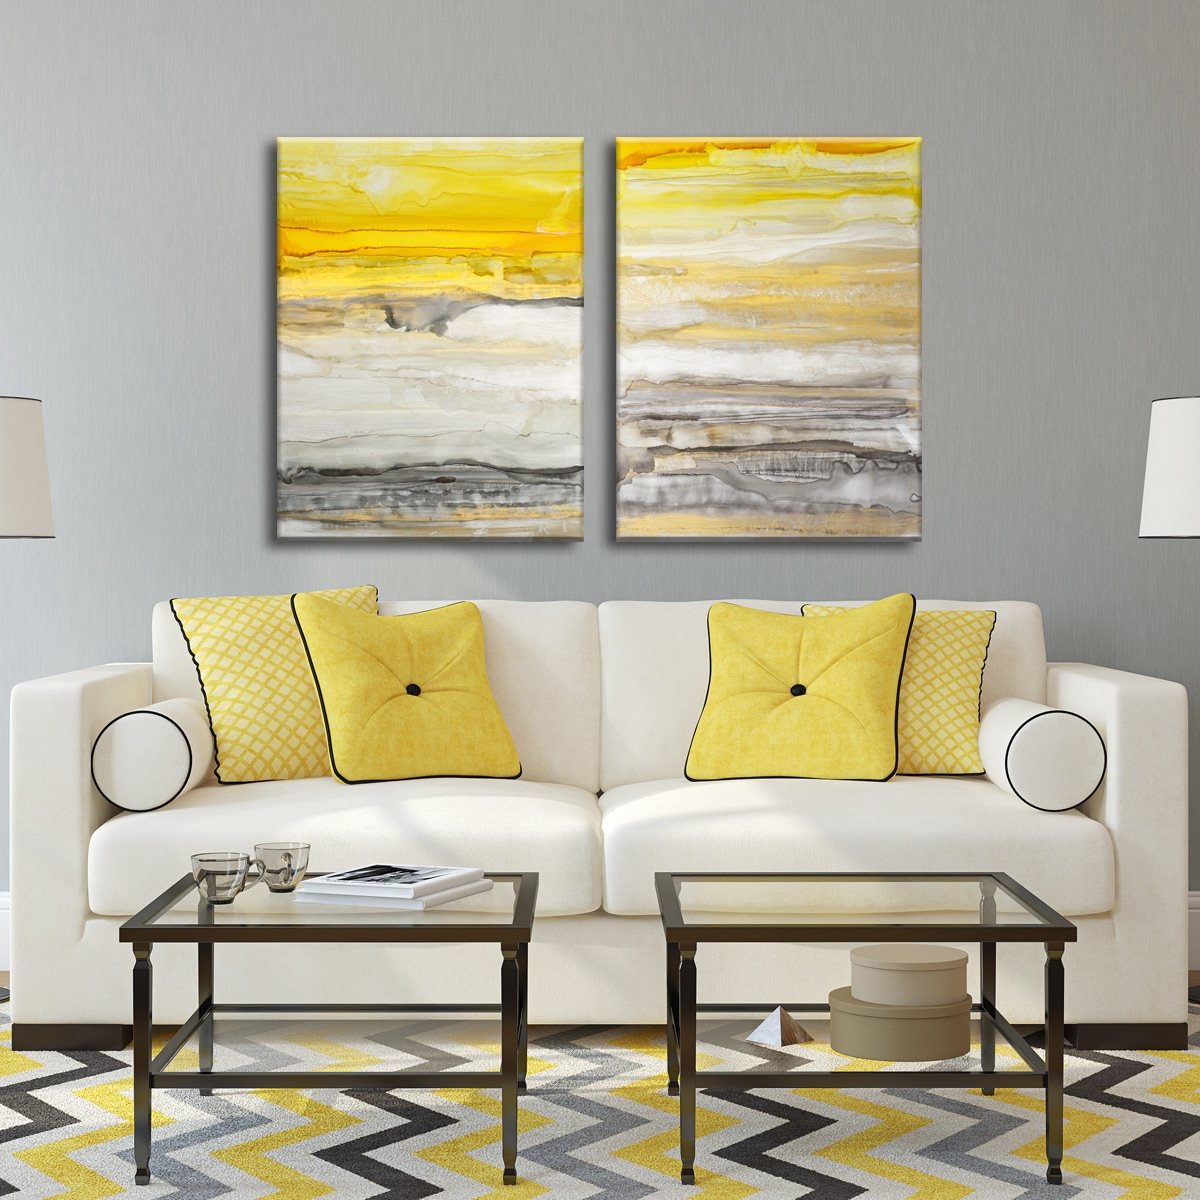 Size Extra Large Art Gallery | Shop our Best Home Goods Deals Online ...